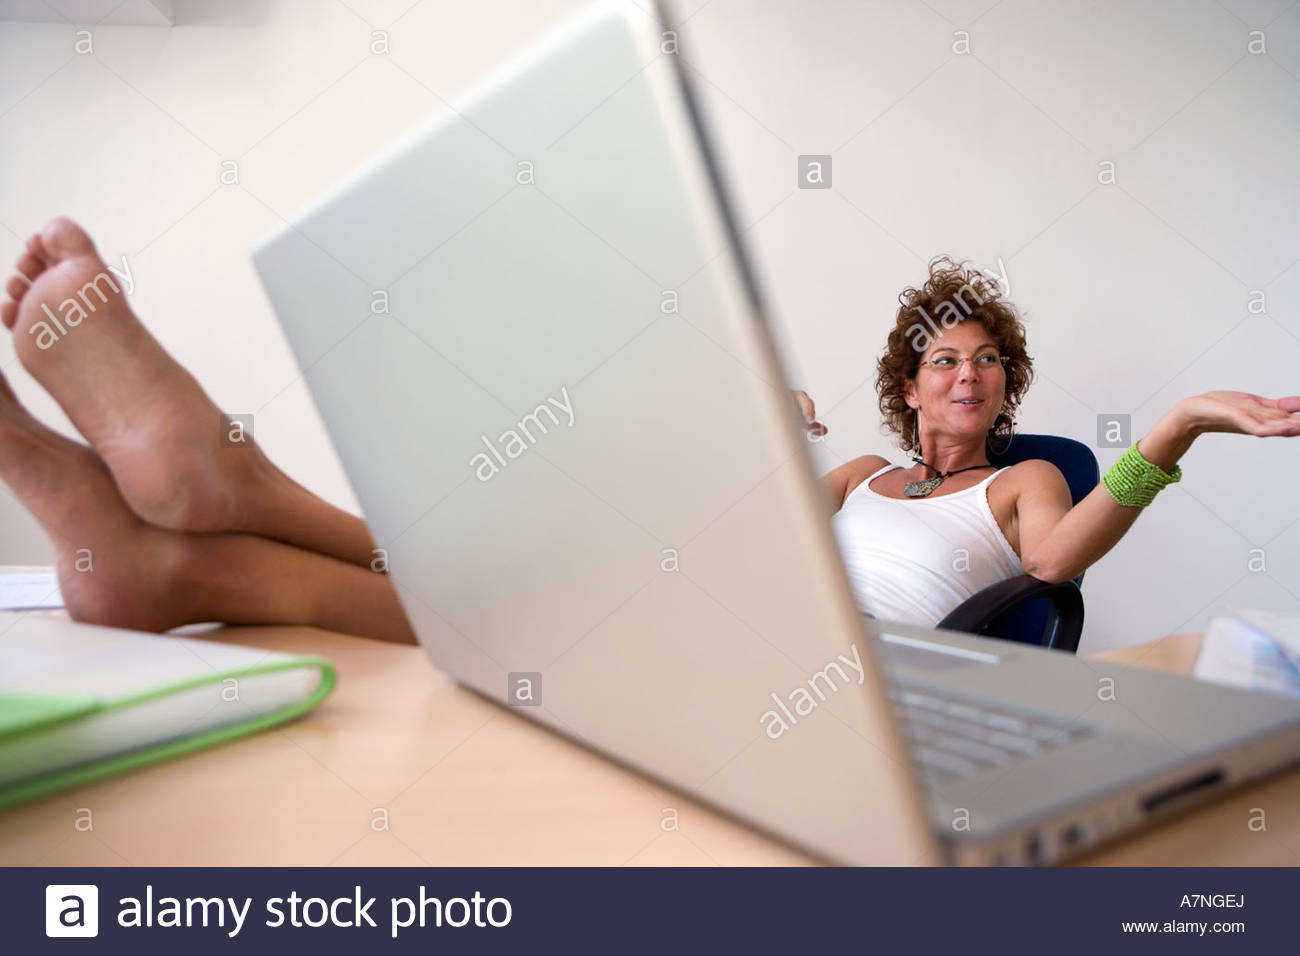 Businesswoman shrugging shoulders resting bare feet up on desk in office laptop in foreground - Stock Image